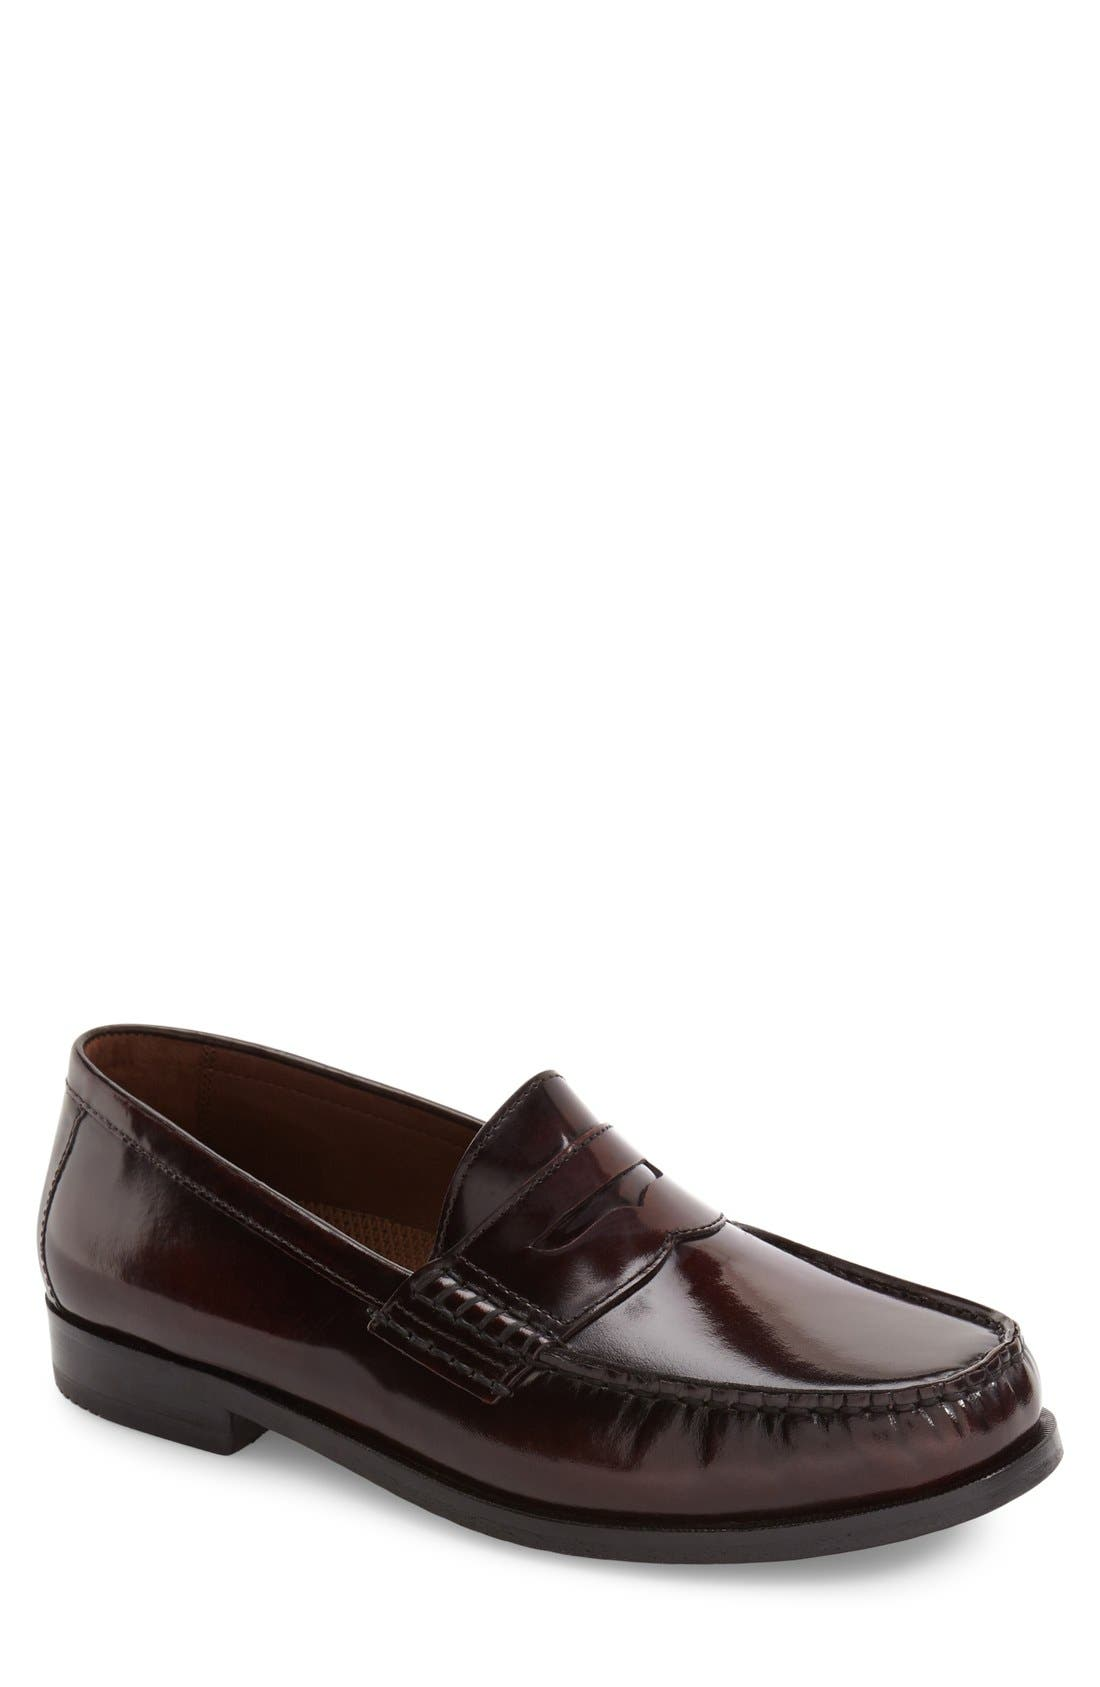 Pannell Penny Loafer,                             Alternate thumbnail 4, color,                             933